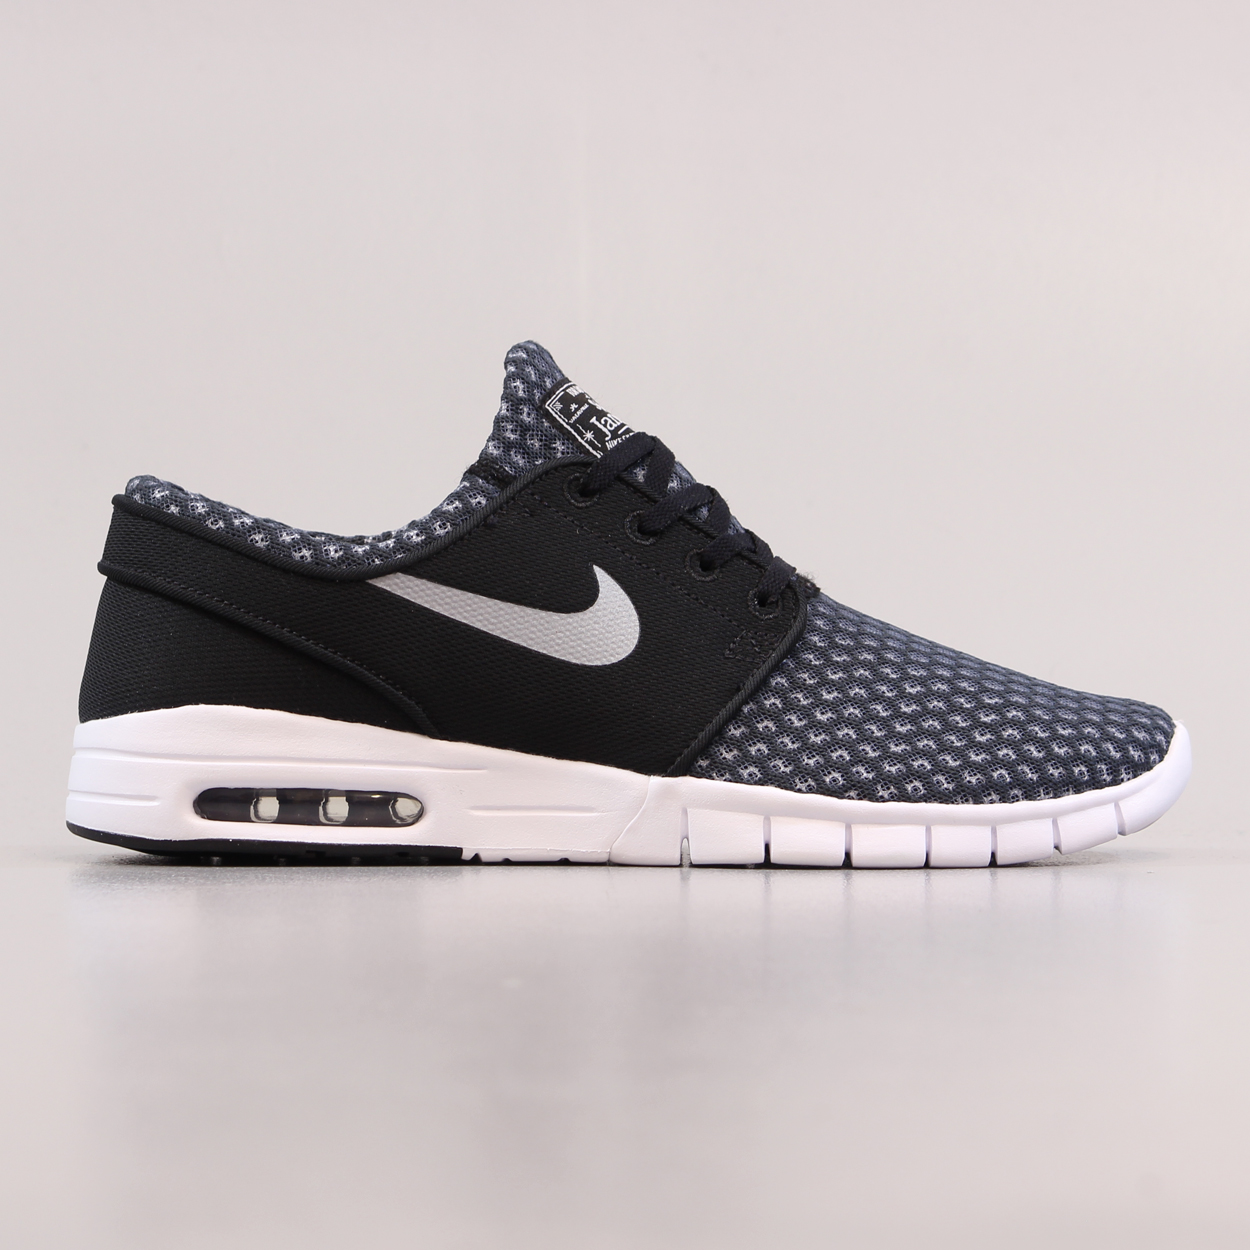 official photos 502ed 892e7 Nike SB Stefan Janoski Max Shoes Black Metallic Cool Grey White £67.50